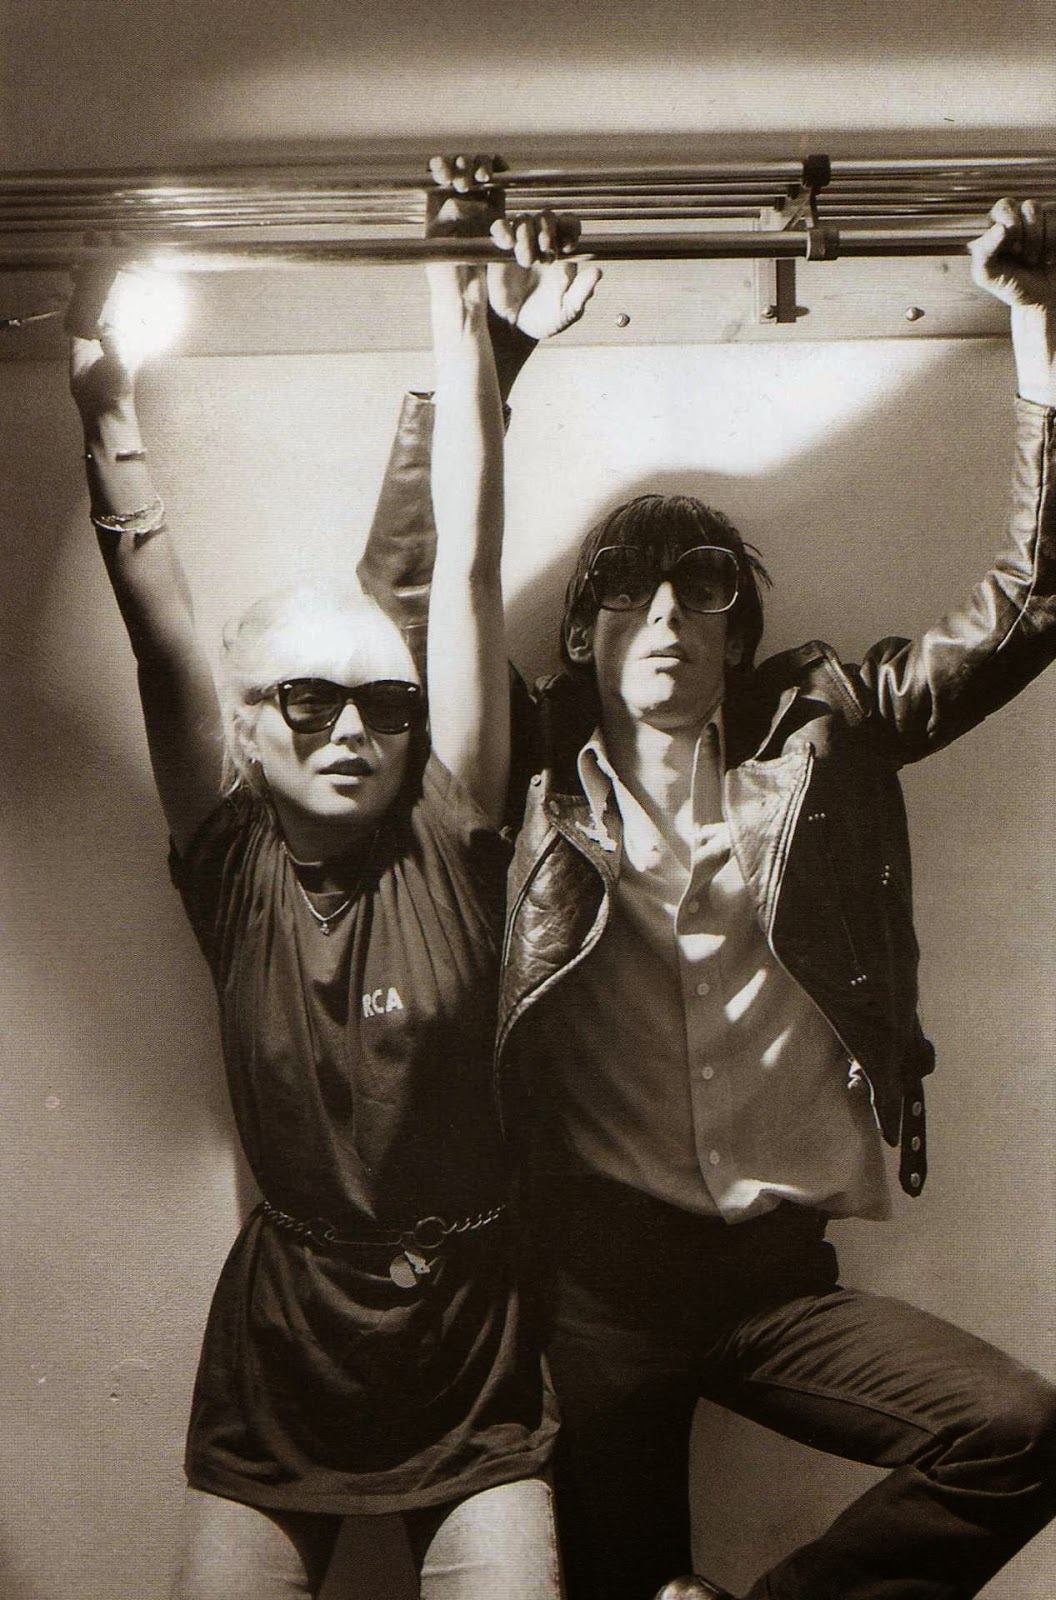 blondie with their hands up